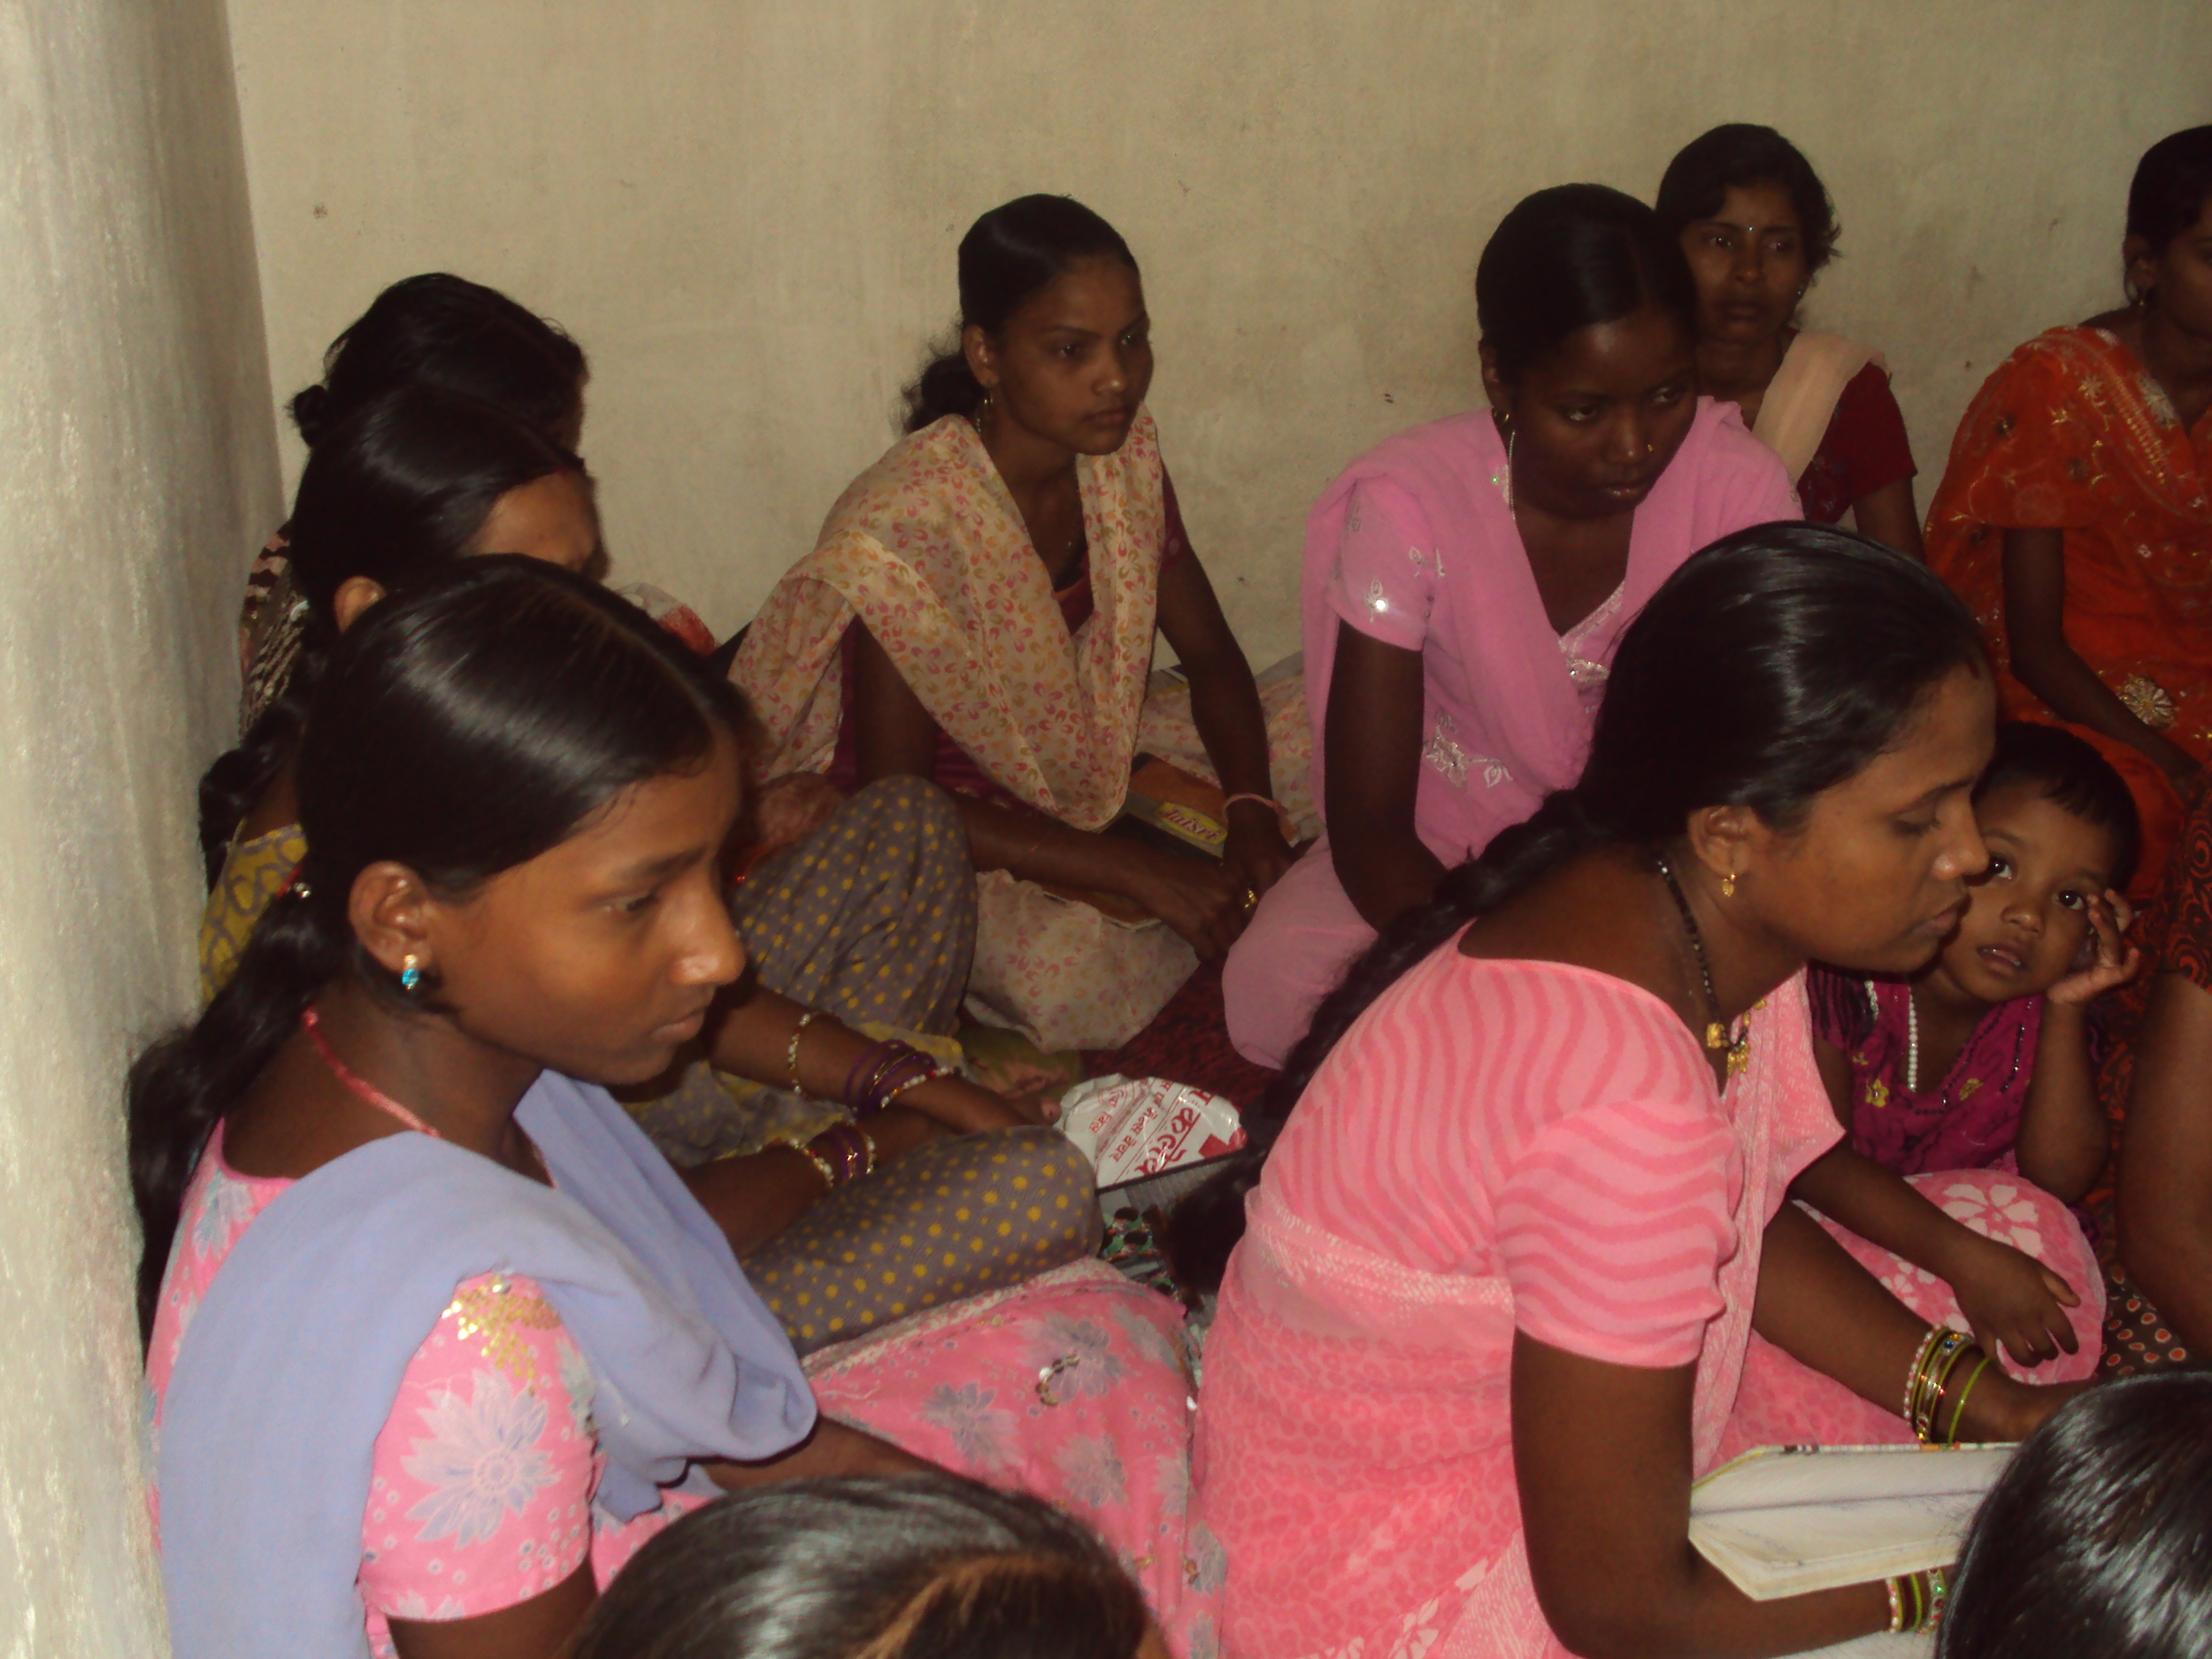 Women from community participating in MHM training at Nava Tola